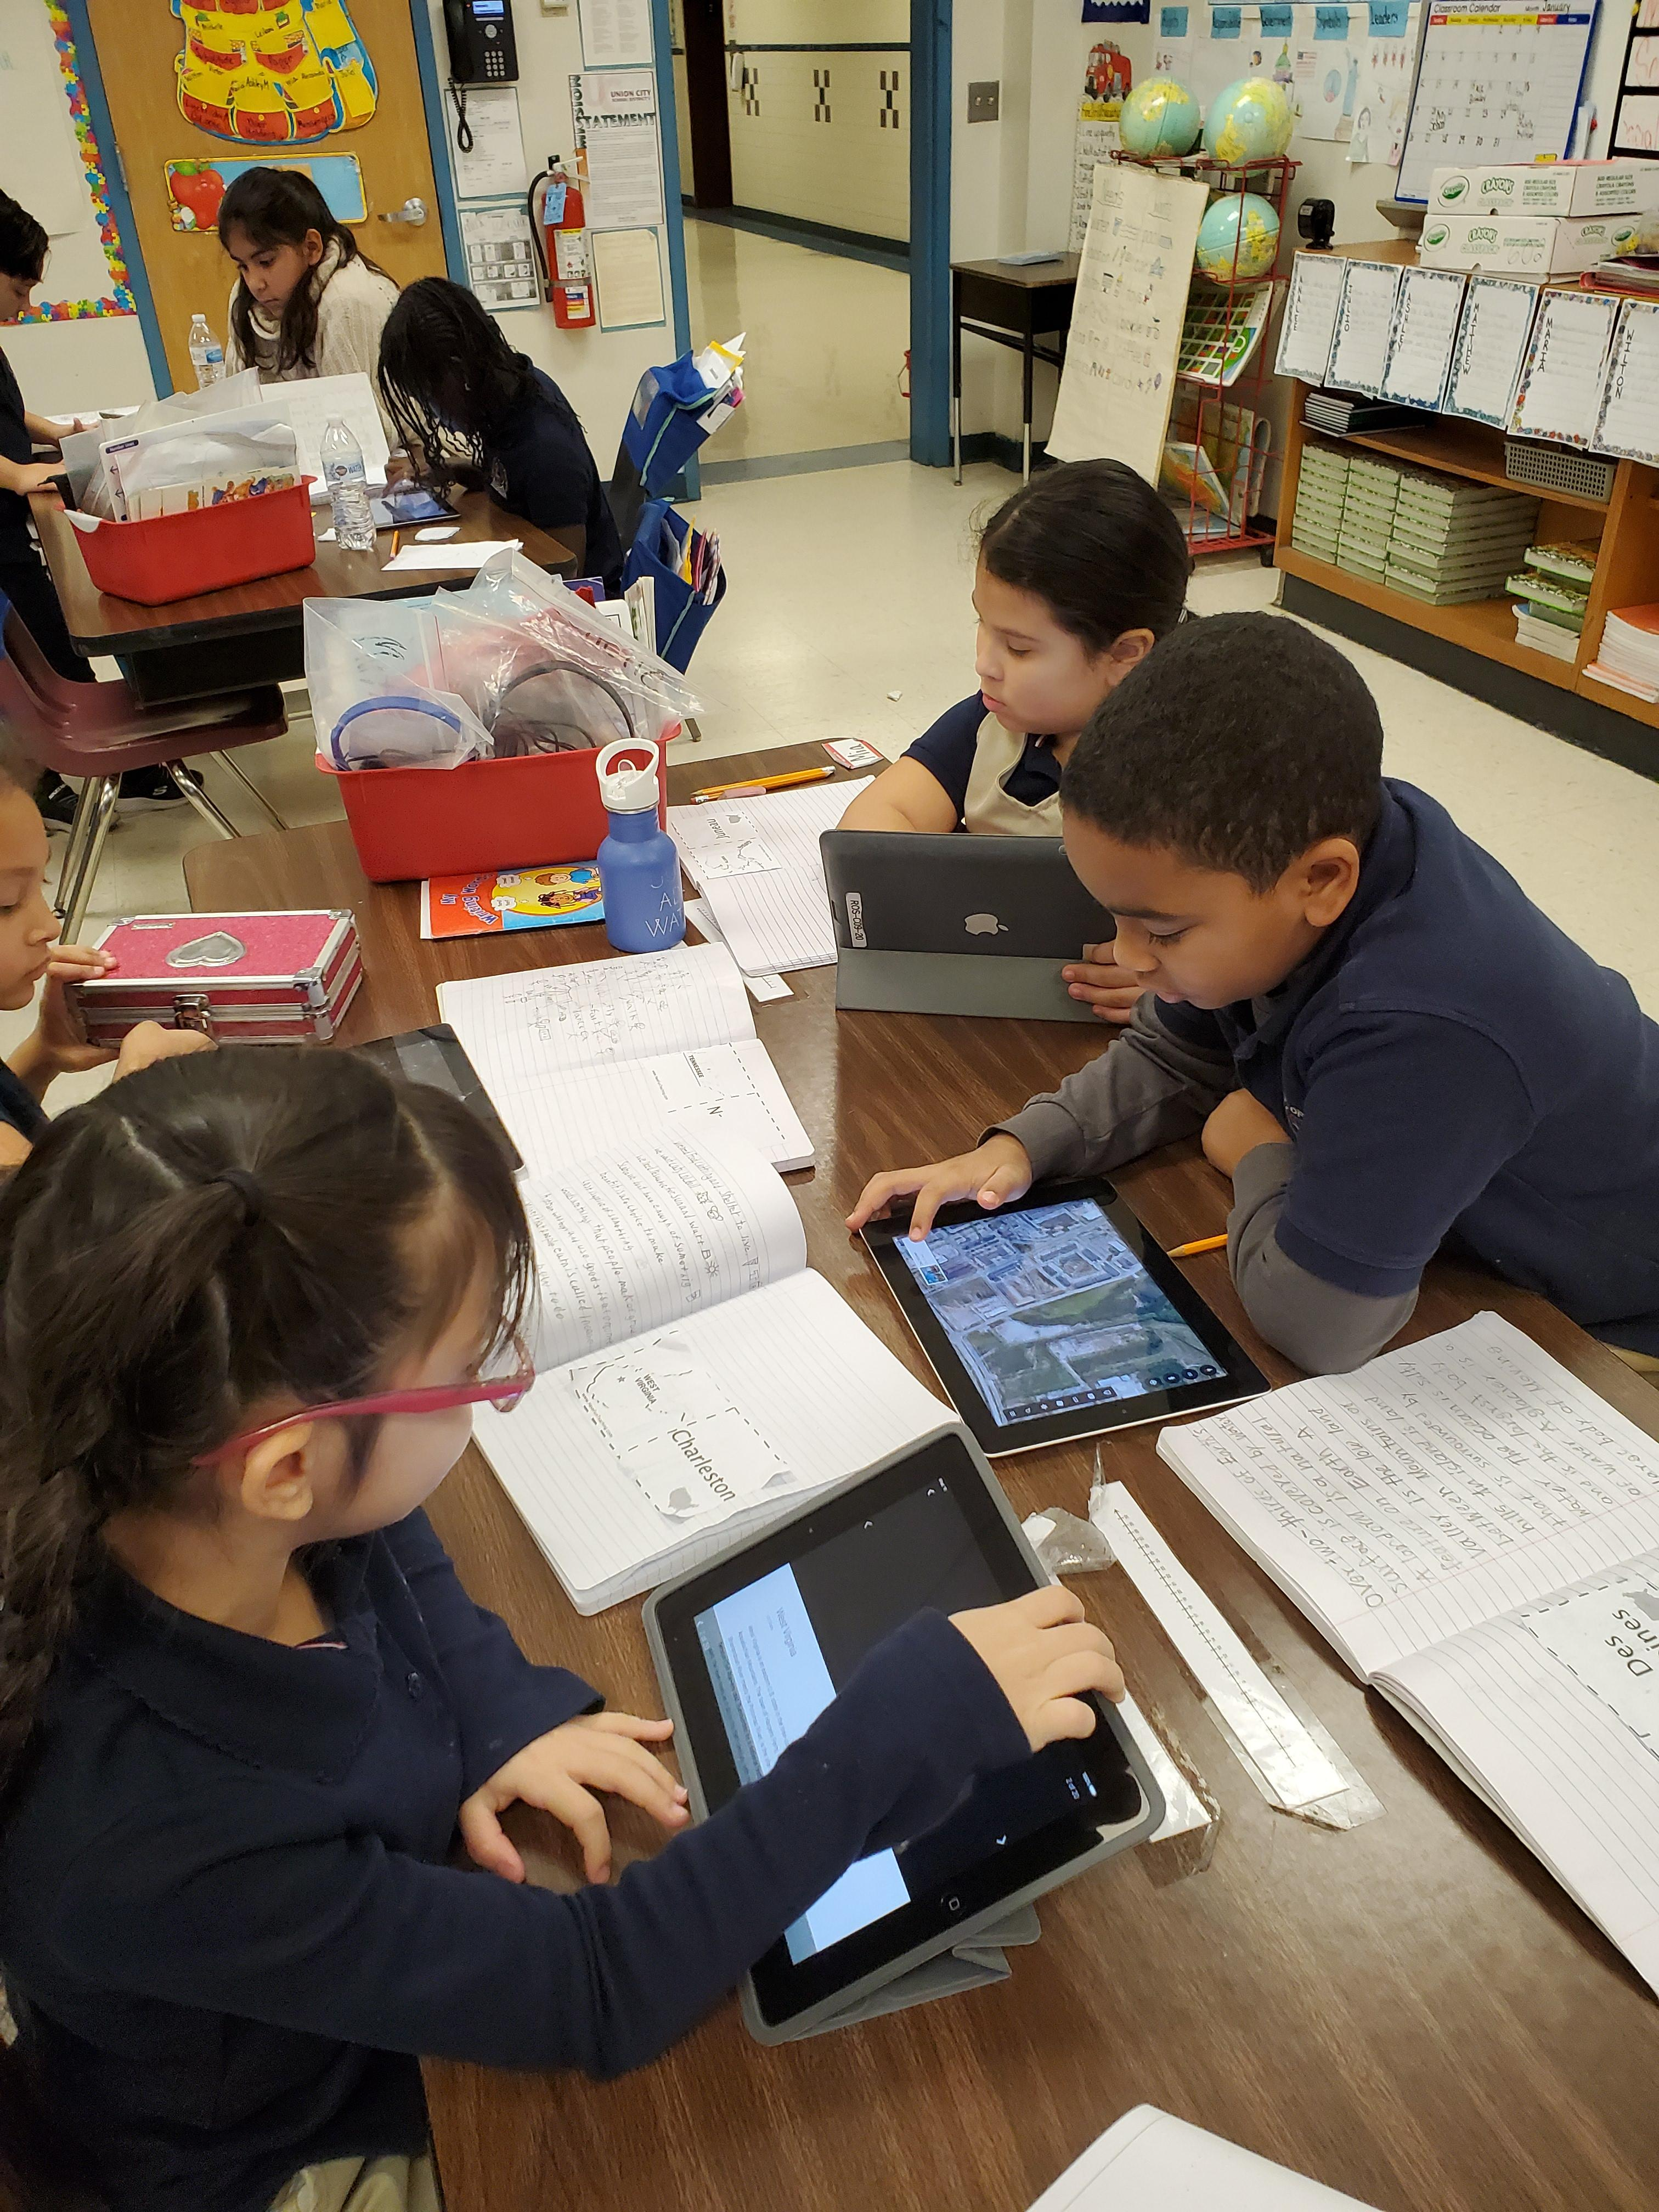 several children seated at desks with designated cities and using ipads to look the up